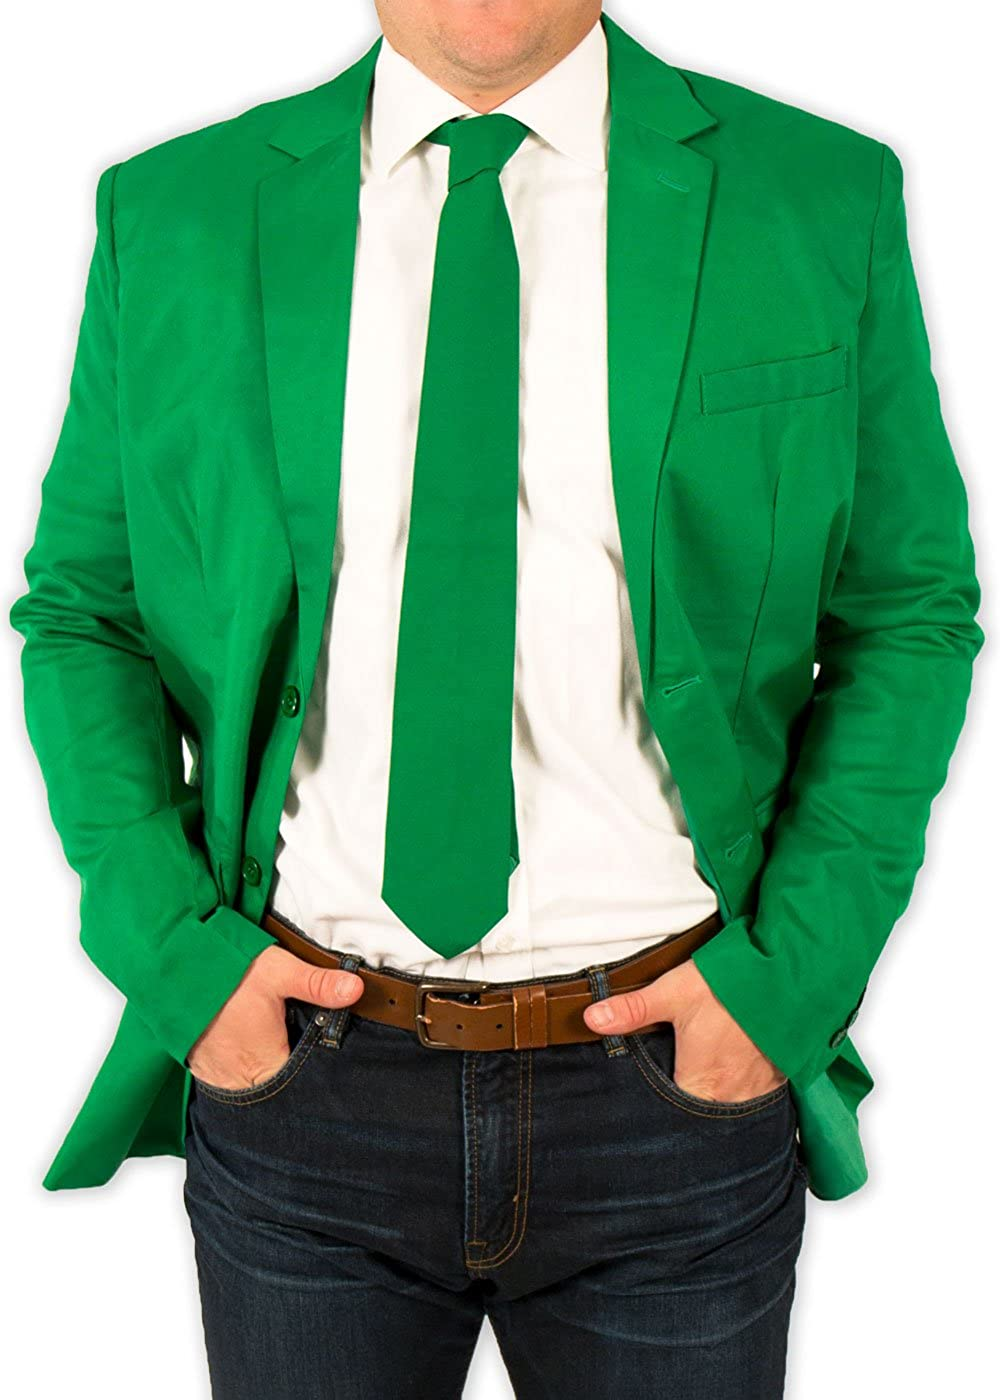 Festified Men's Classic Party Suit Coat and Tie In Green